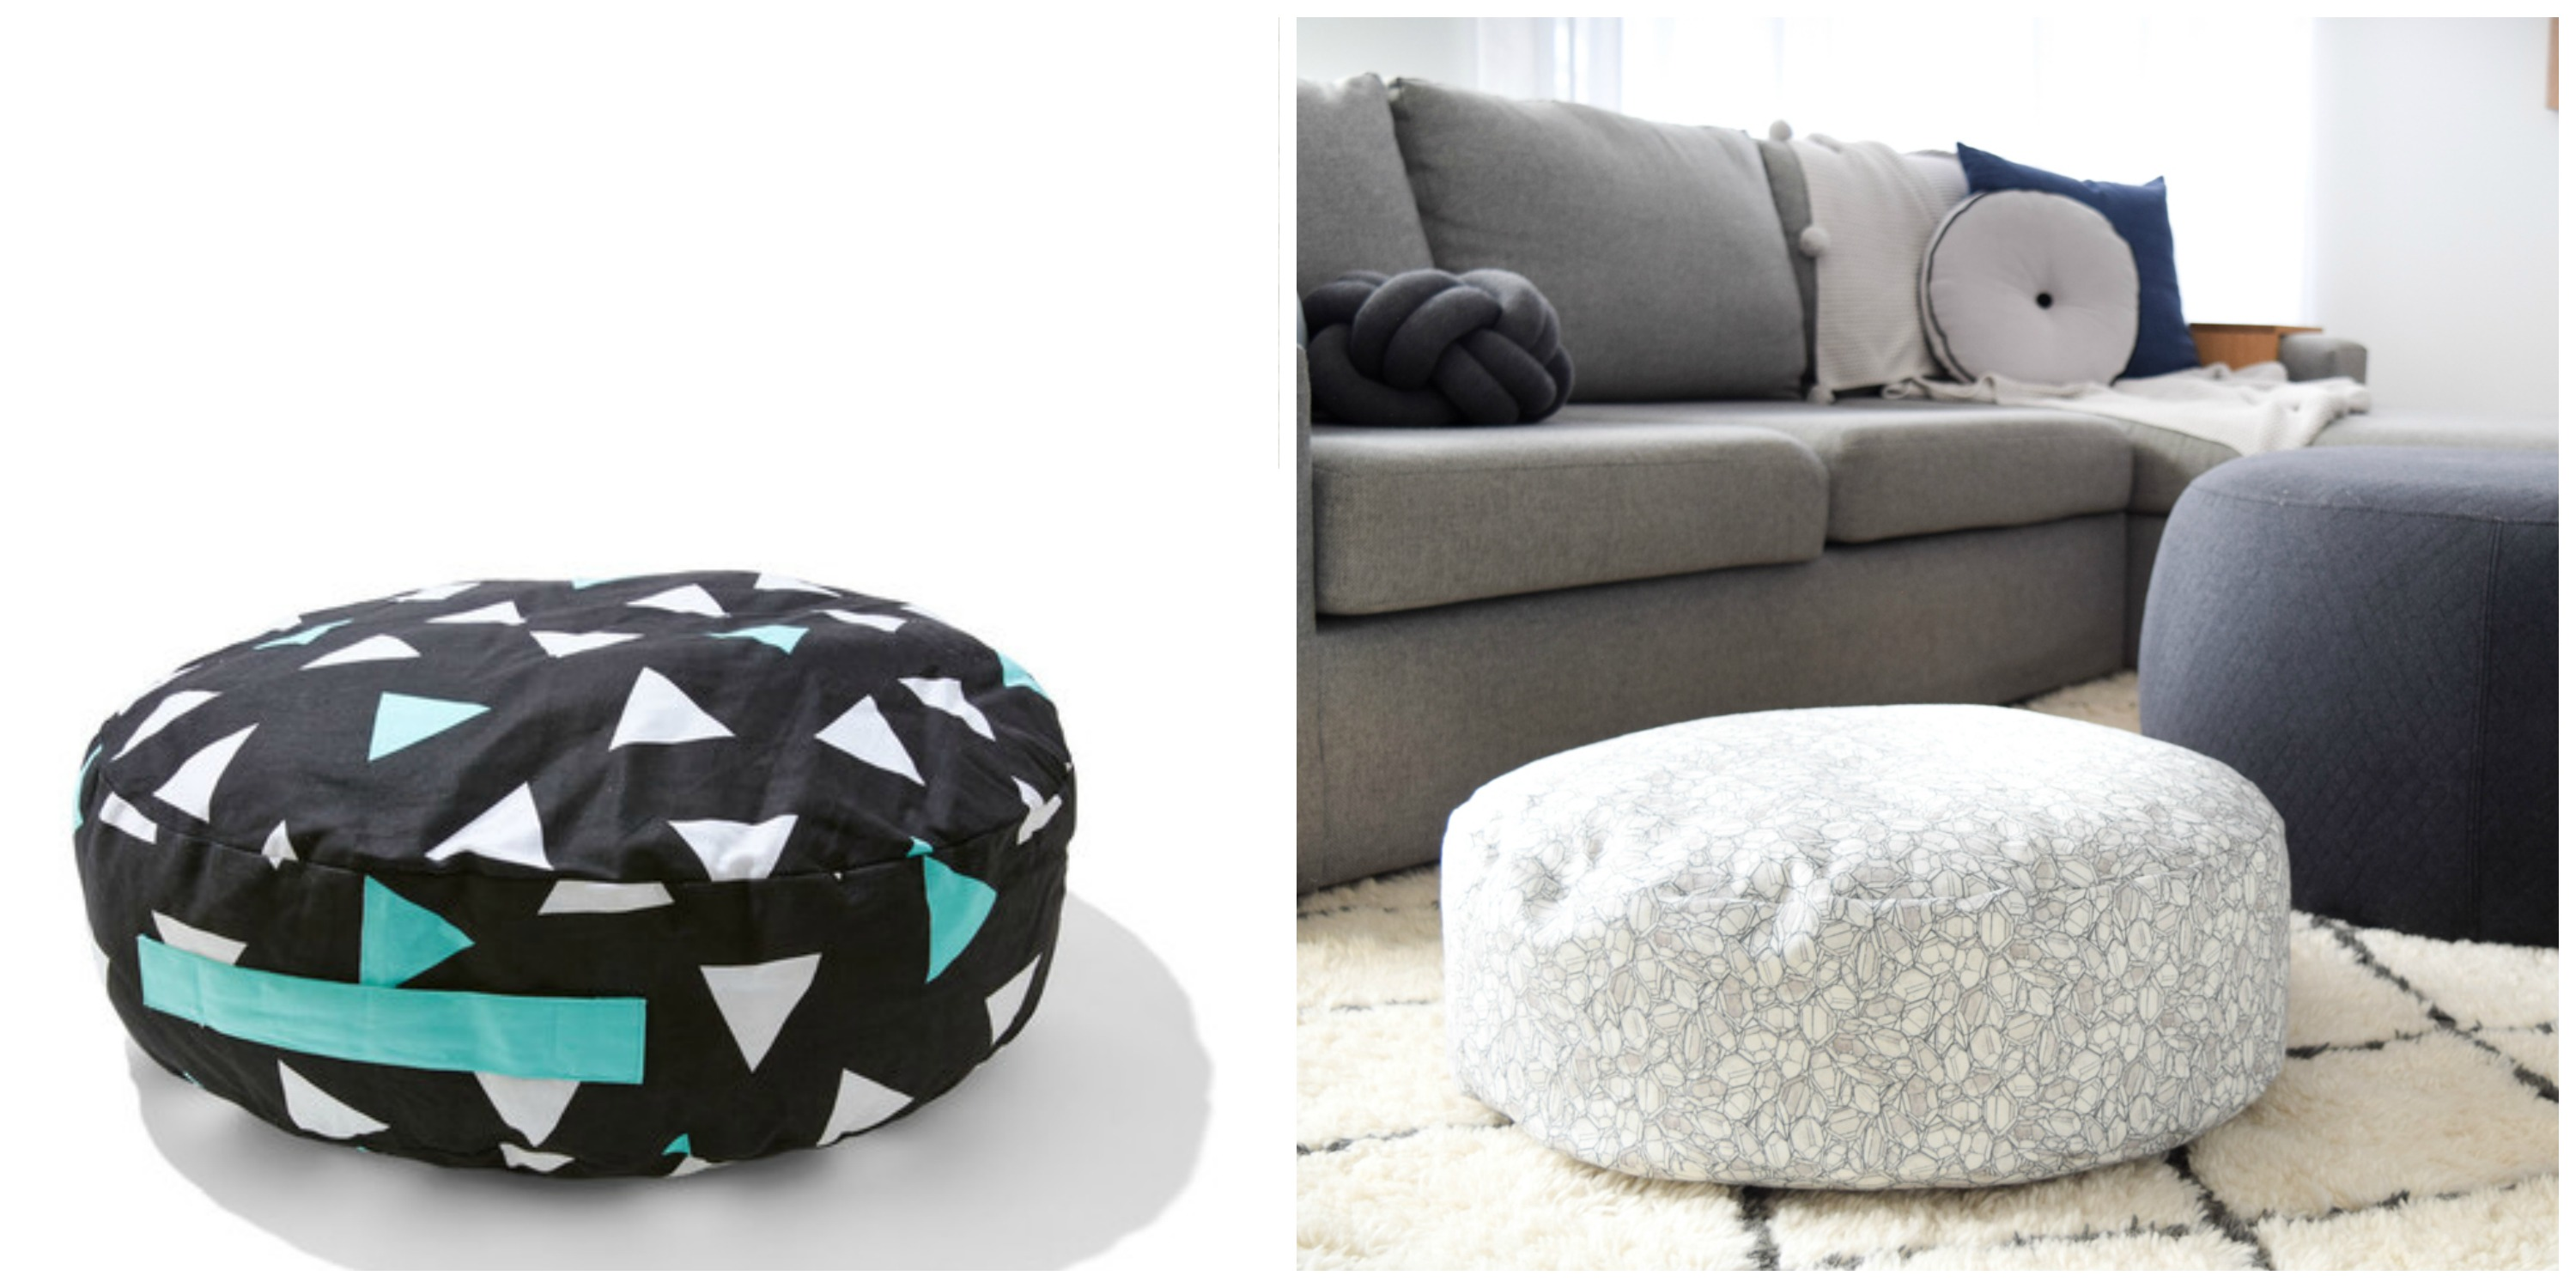 Kmart Hack Kids Cushion Turns Luxe Floor Cushion Style